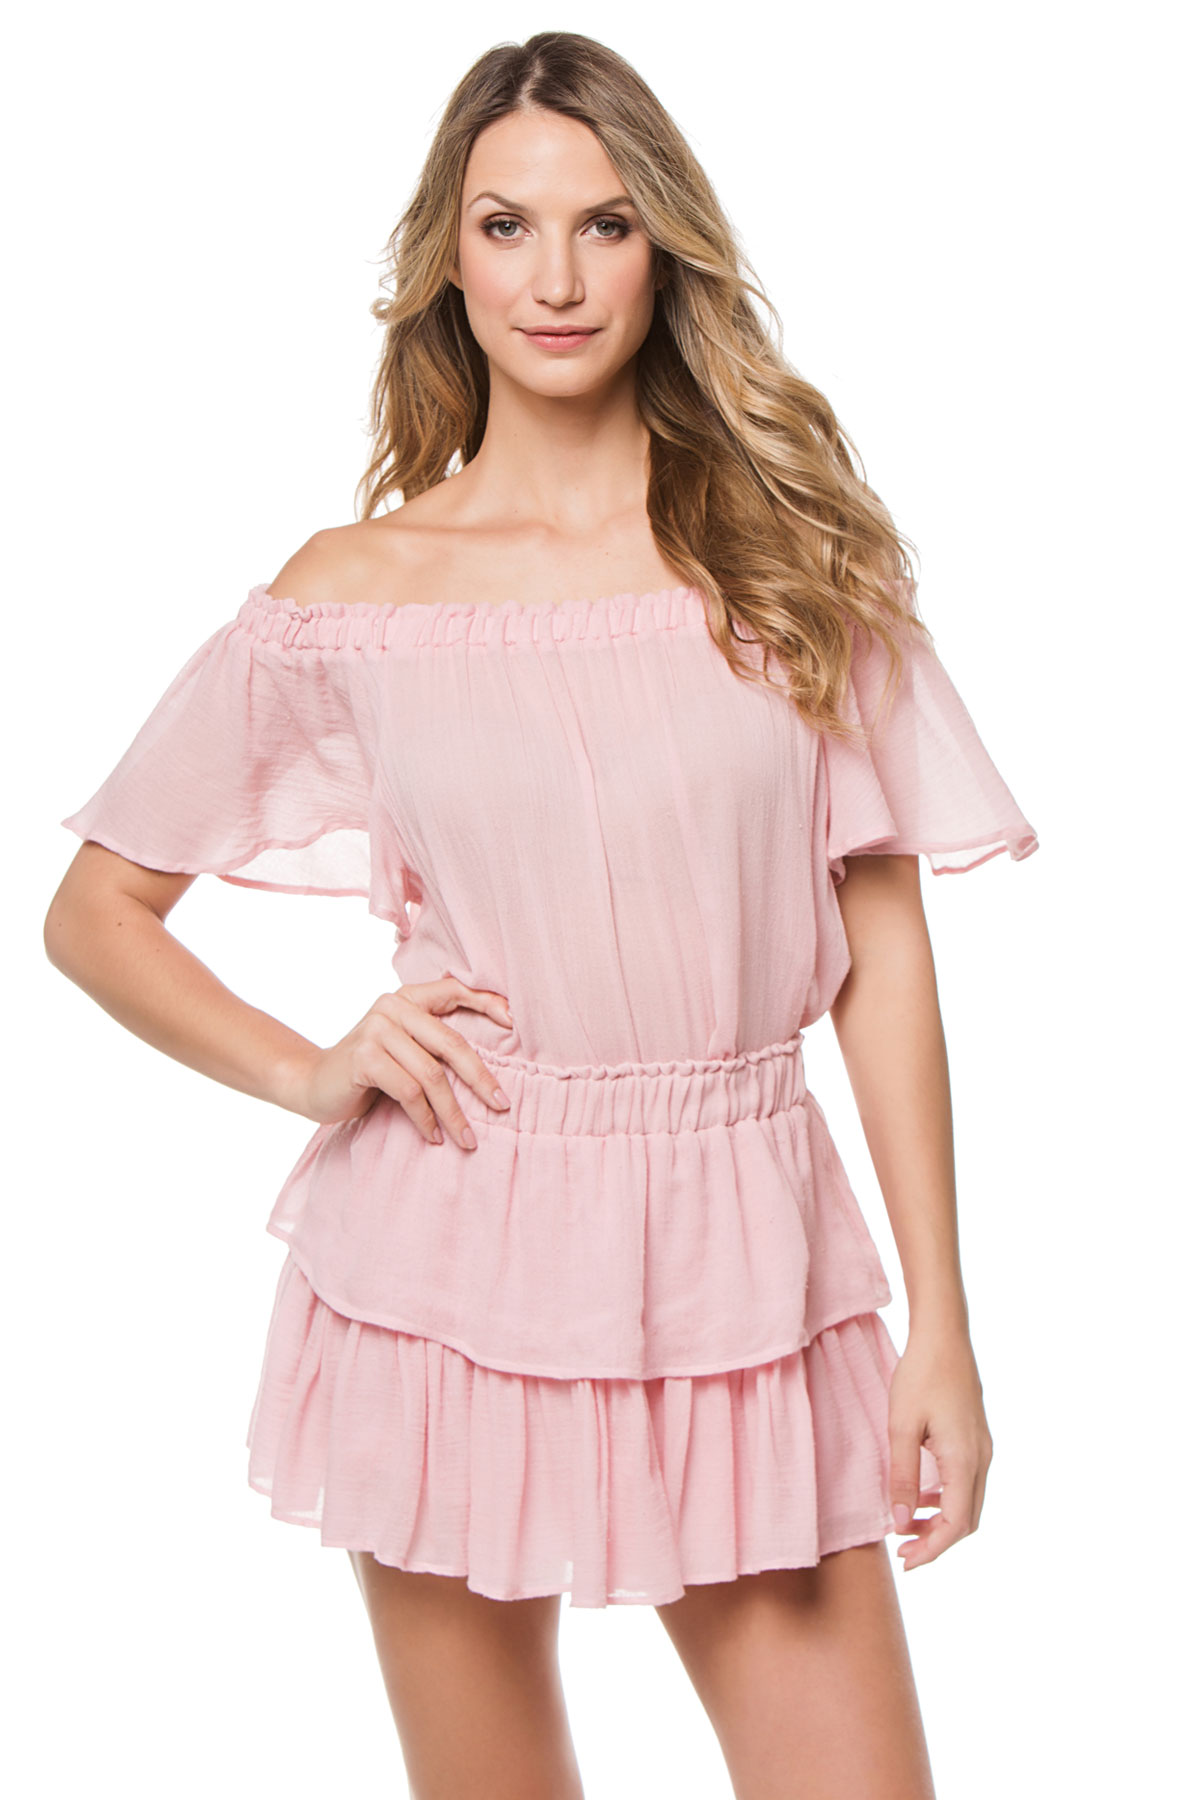 Off The Shoulder Blouse - Silver Pink